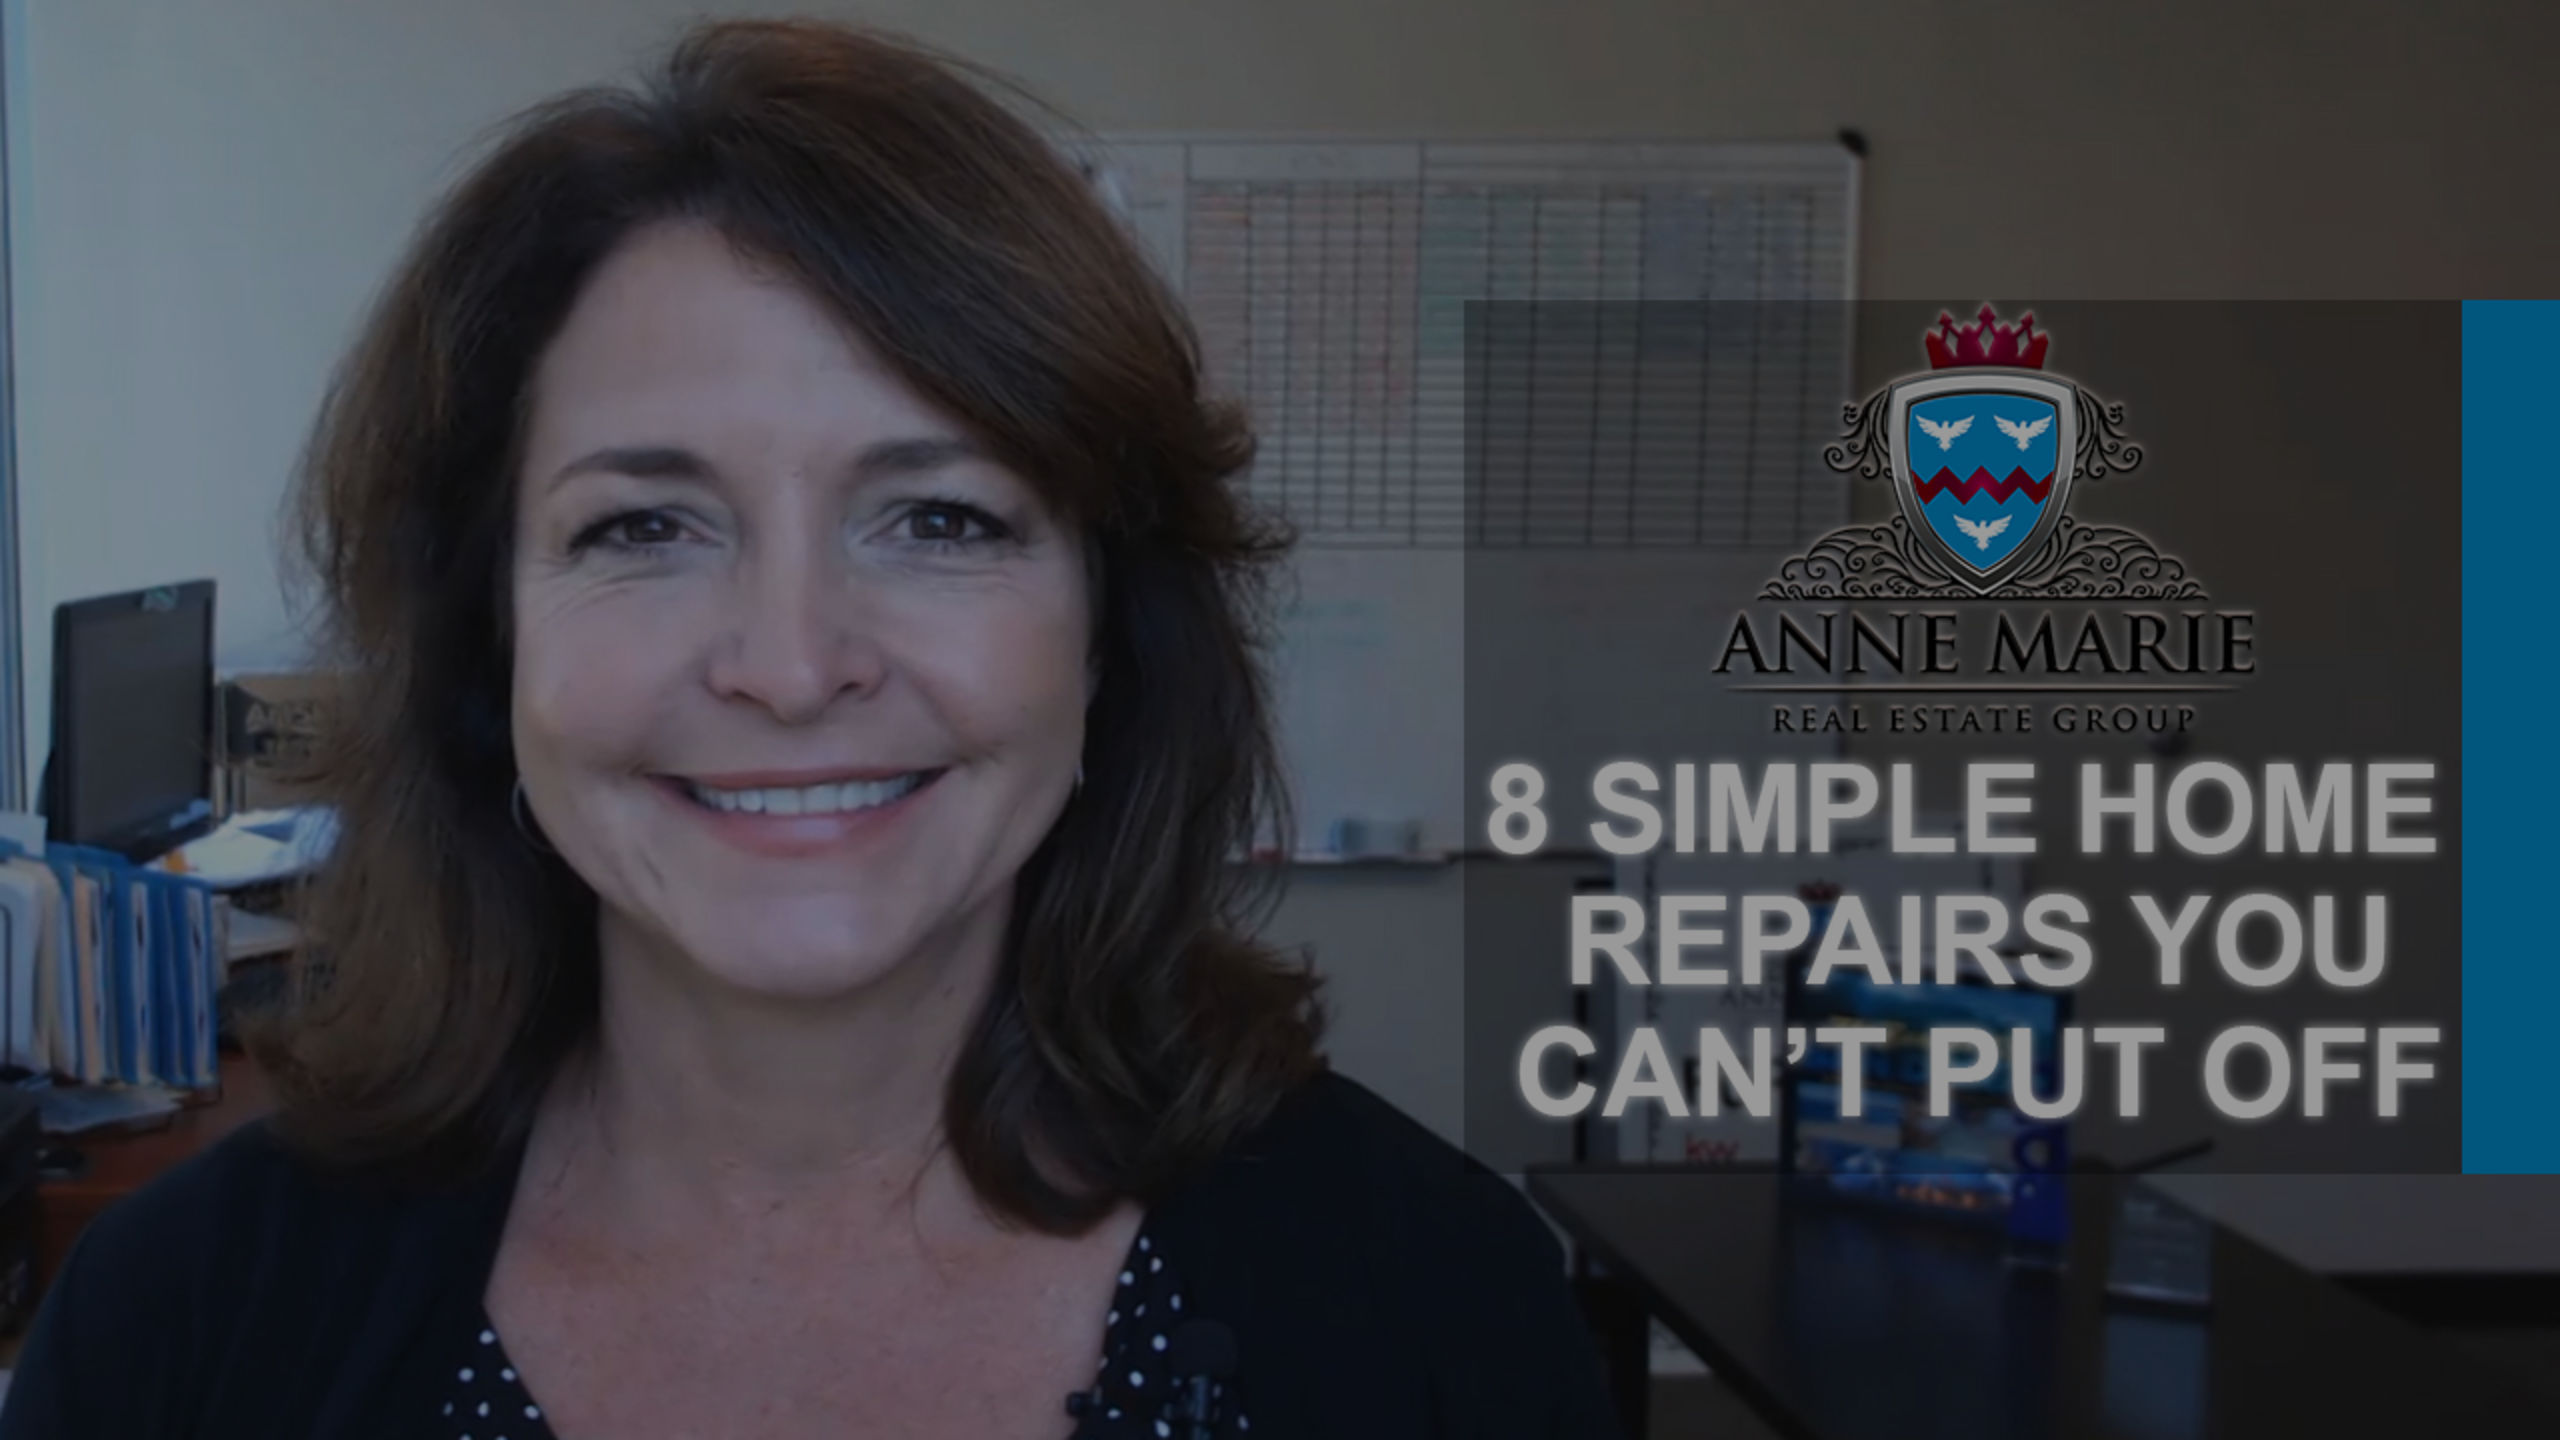 8 Simple Home Repairs You Can't Put Off